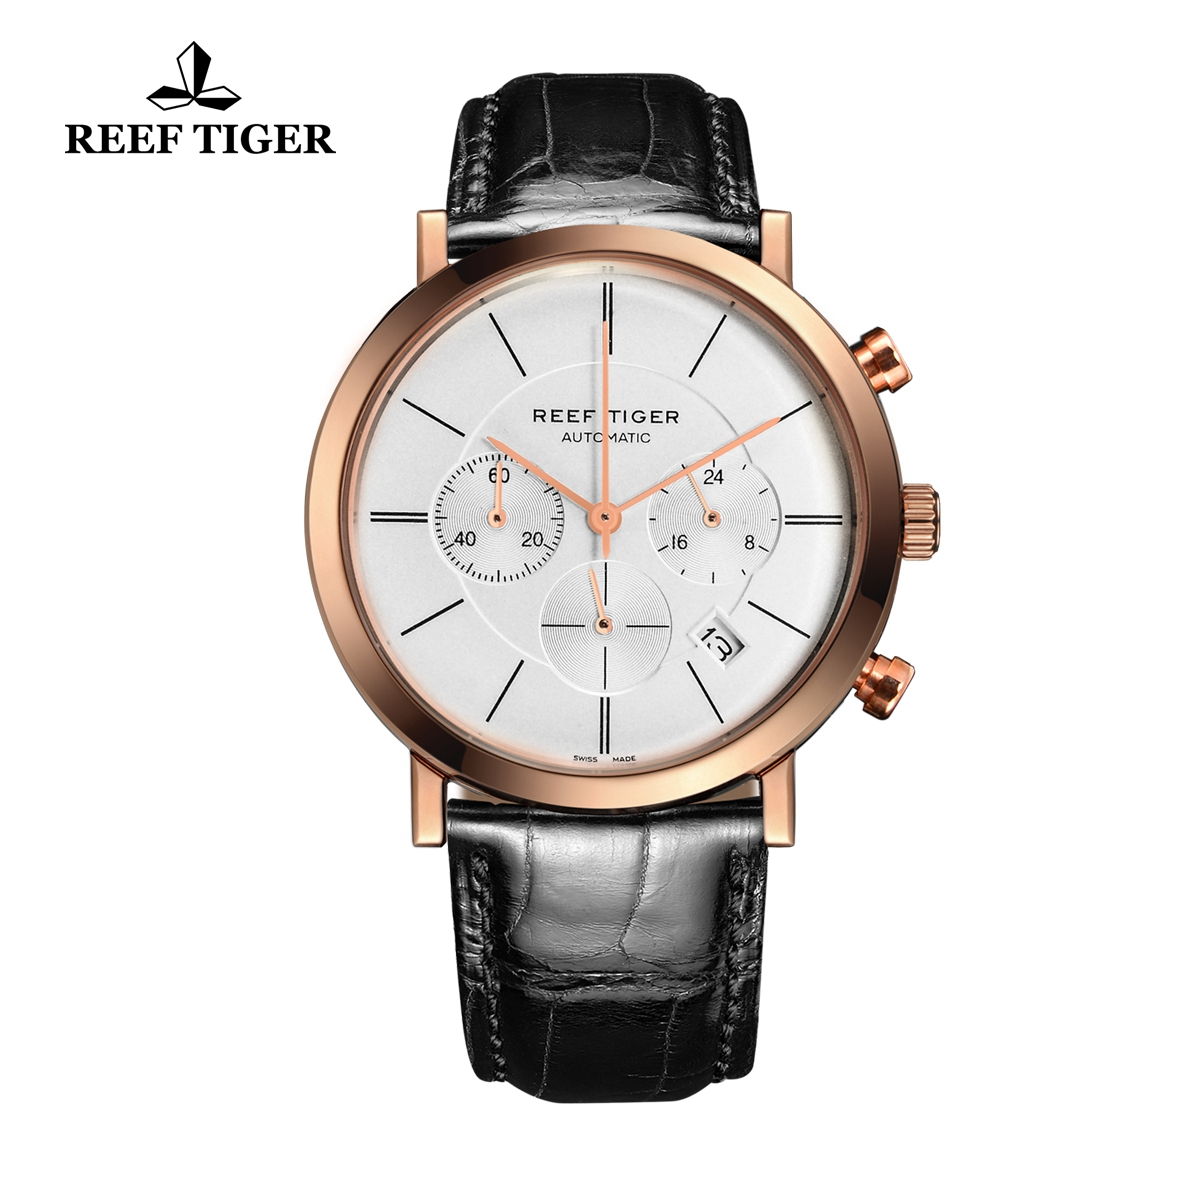 Reef Tiger Business Watch Ultra Thin Rose Gold White Dial Chronograph Quartz Watch RGA162-PWB